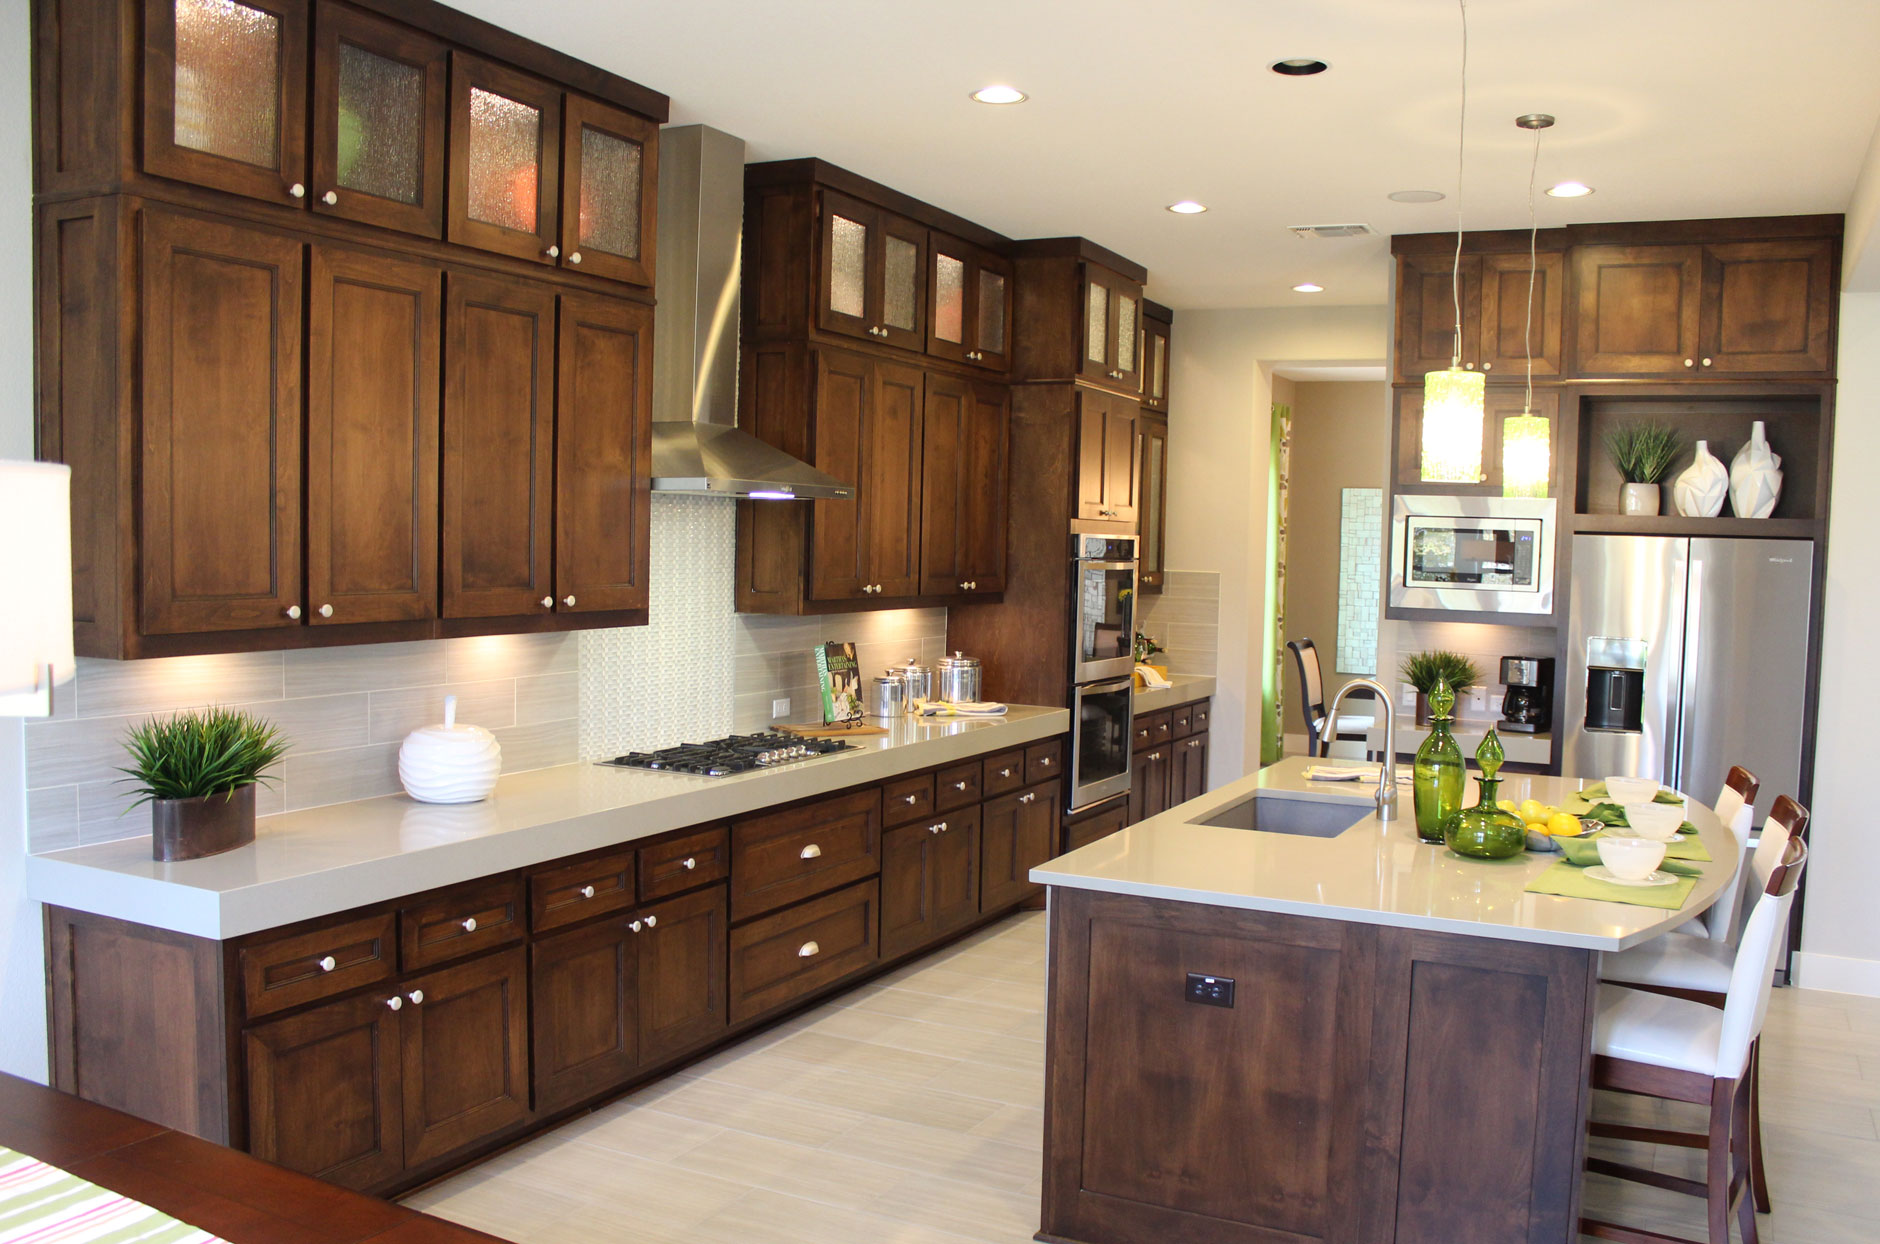 Contemporary Crown Molding For Kitchen Cabinets Molding Burrows Cabinets Central Texas Builder Direct